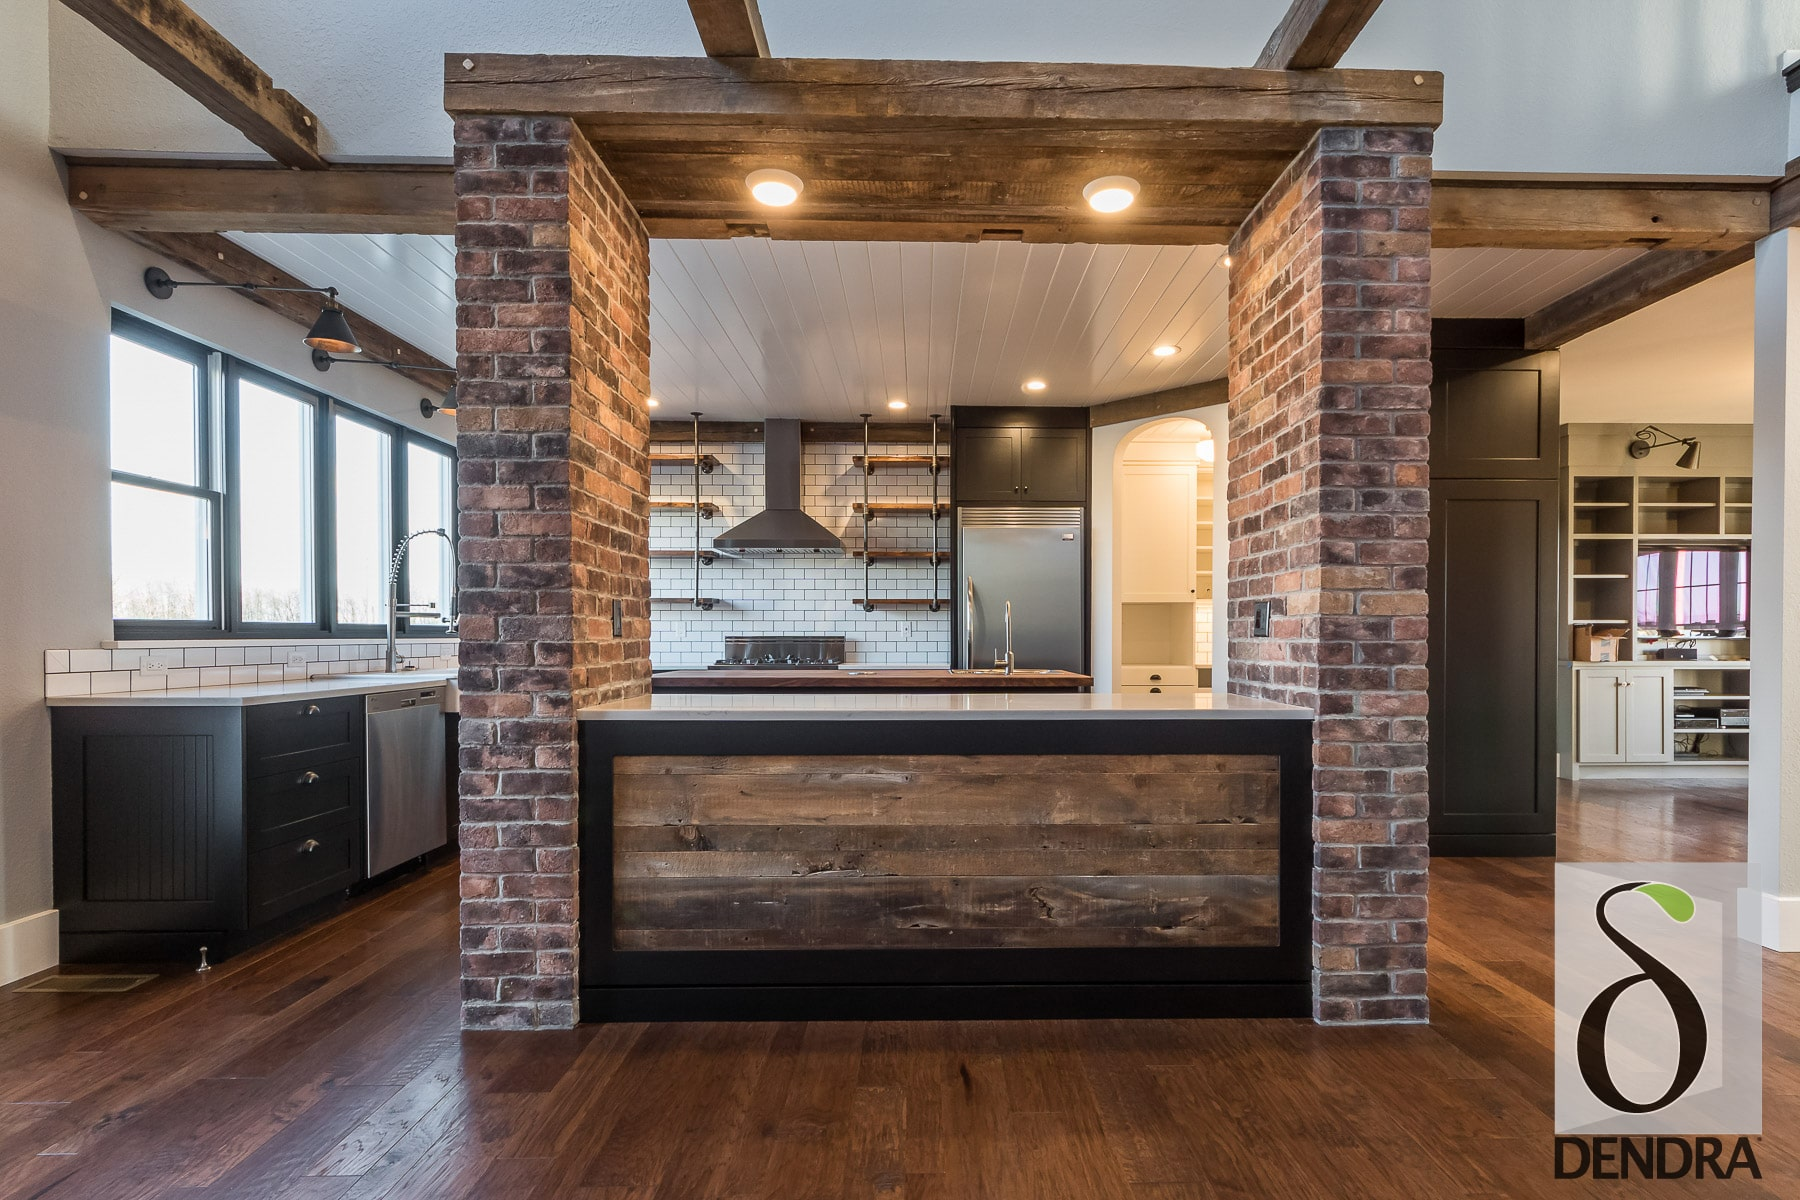 If We Donu0027t Carry It, We Will Find It. We Have Lots Of Samples With  Staining, Reclaimed Wood, Etc. Remodeling Is Ultimately How You Will Make A  Space Truly ...